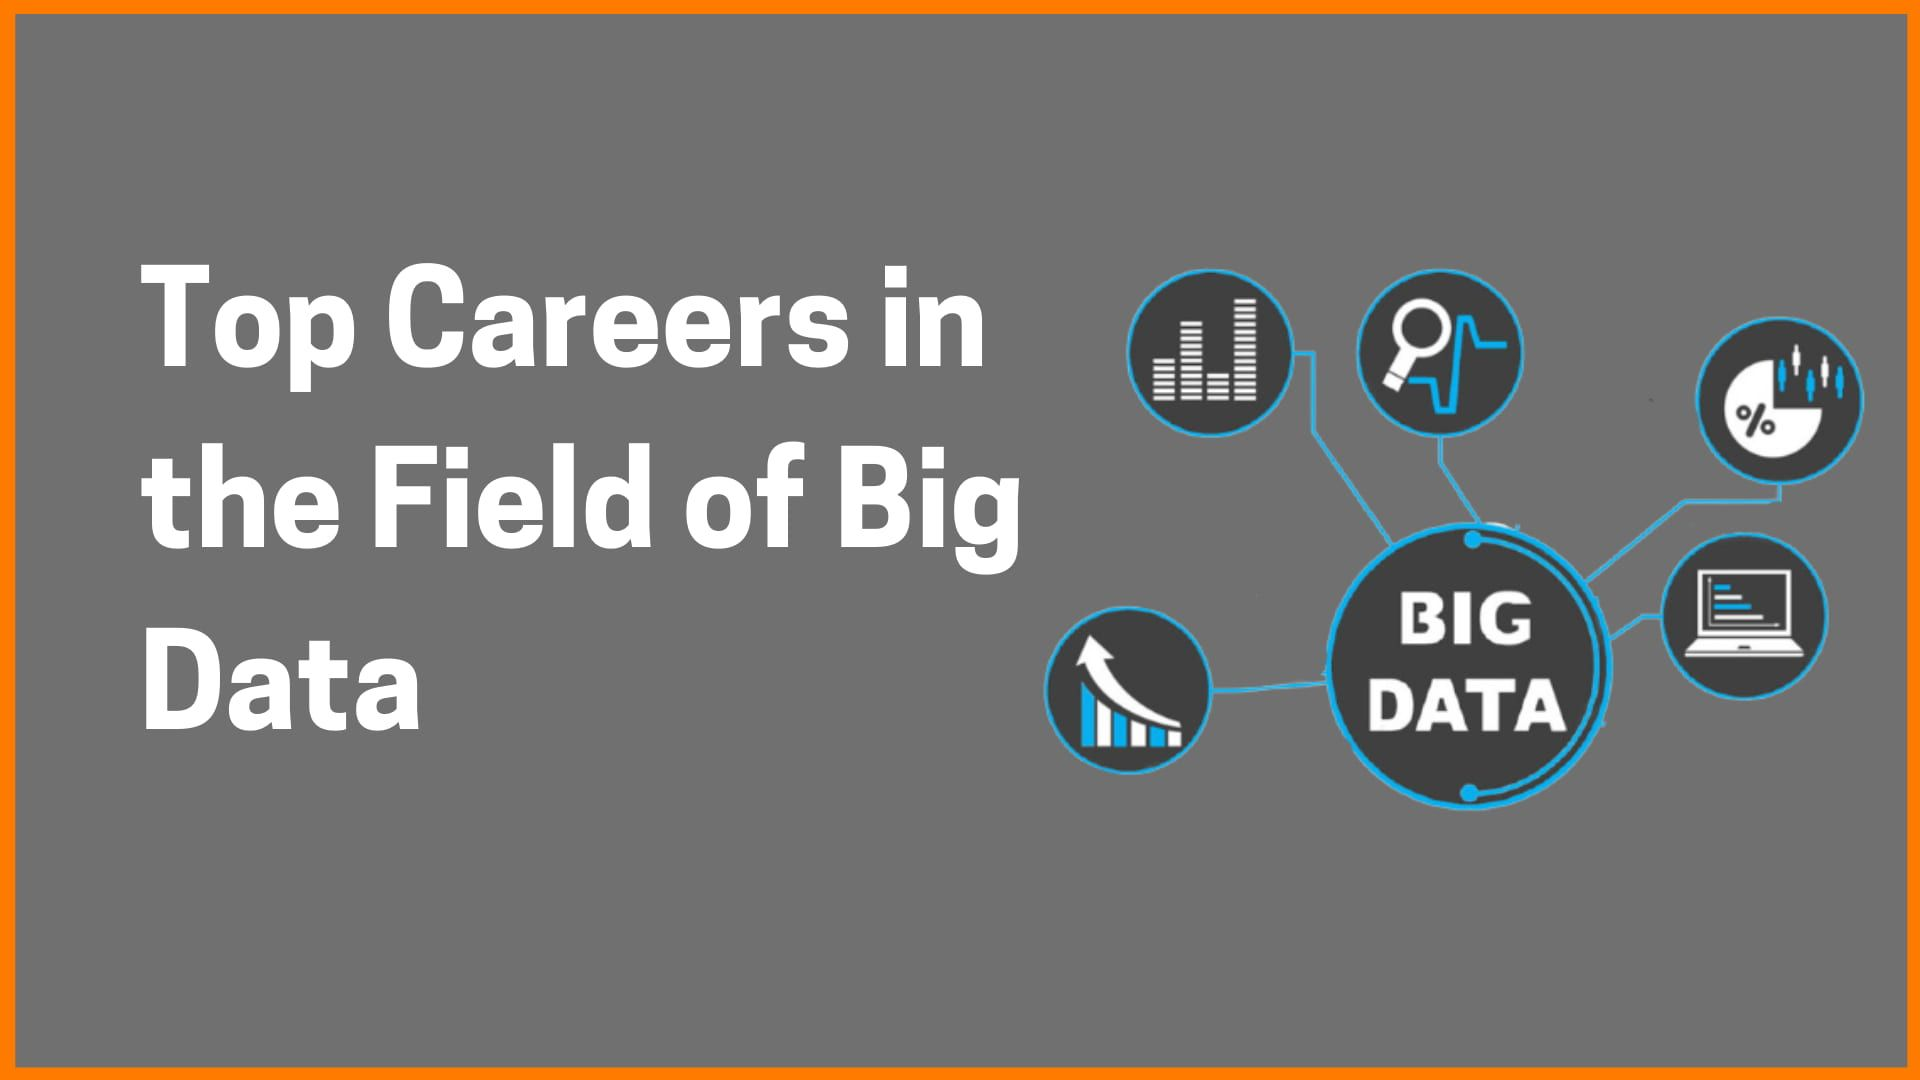 Top Careers in the Field of Big Data